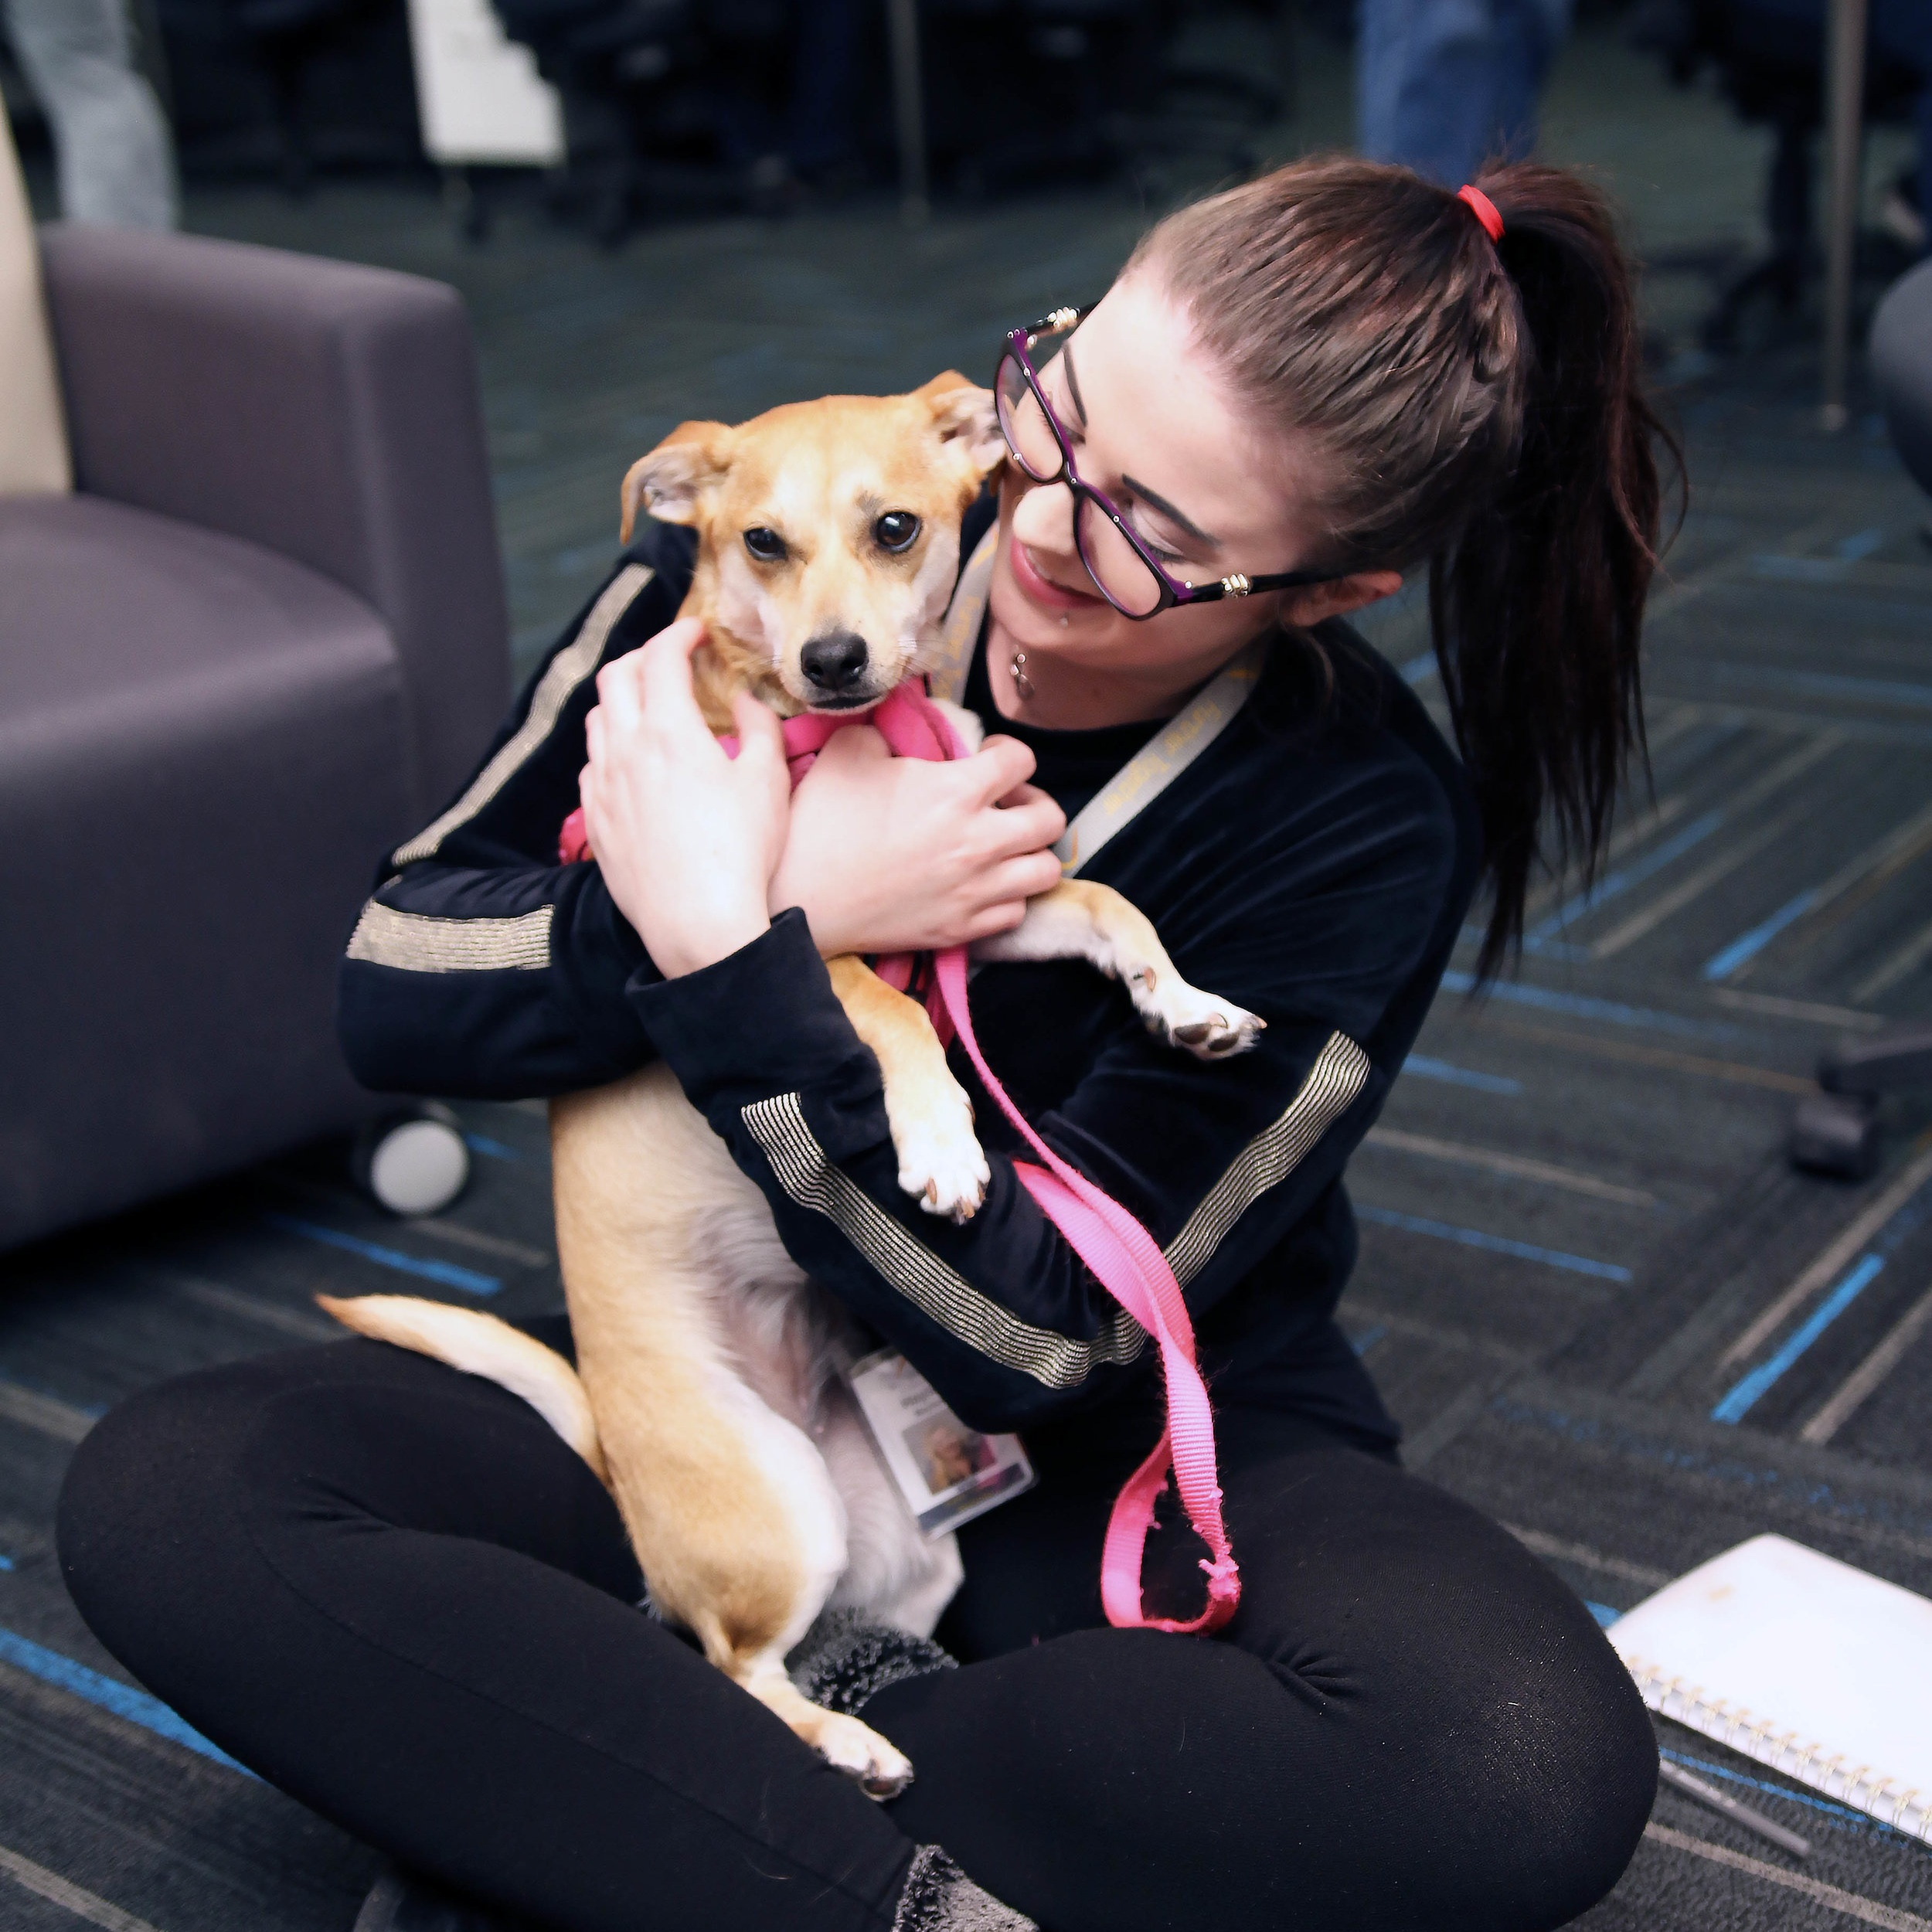 Employees have the opportunity to interact with furry friends on Dog Days